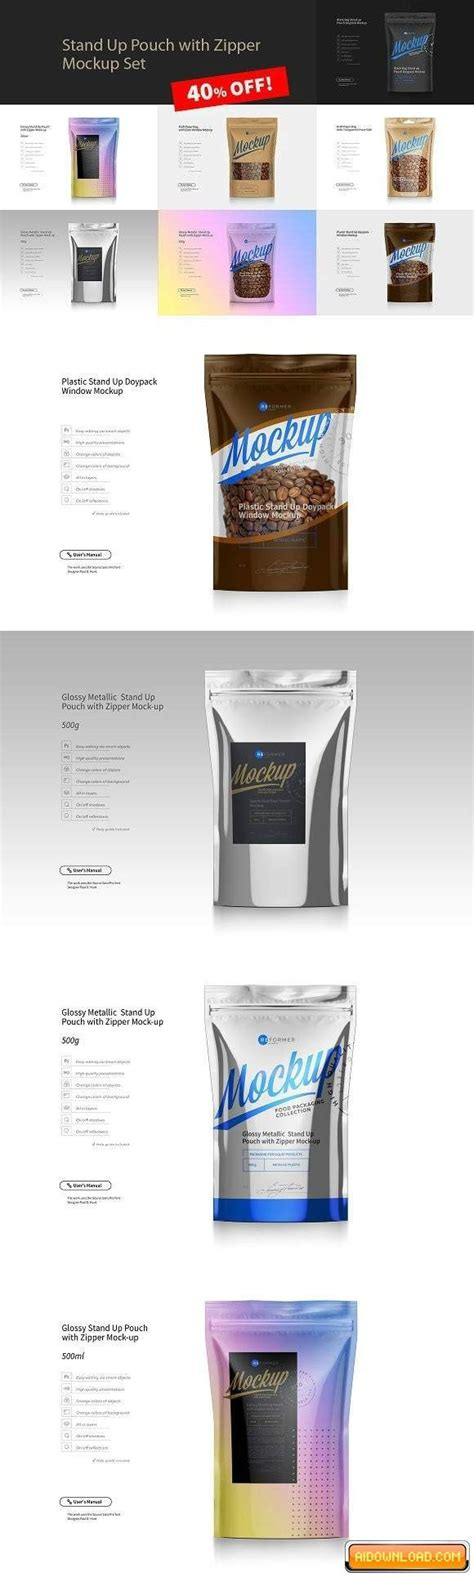 Free aluminium coffee standing pouch packaging mockup psd. Stand Up Pouch Mockup Set | Free Graphic Templates, Fonts ...